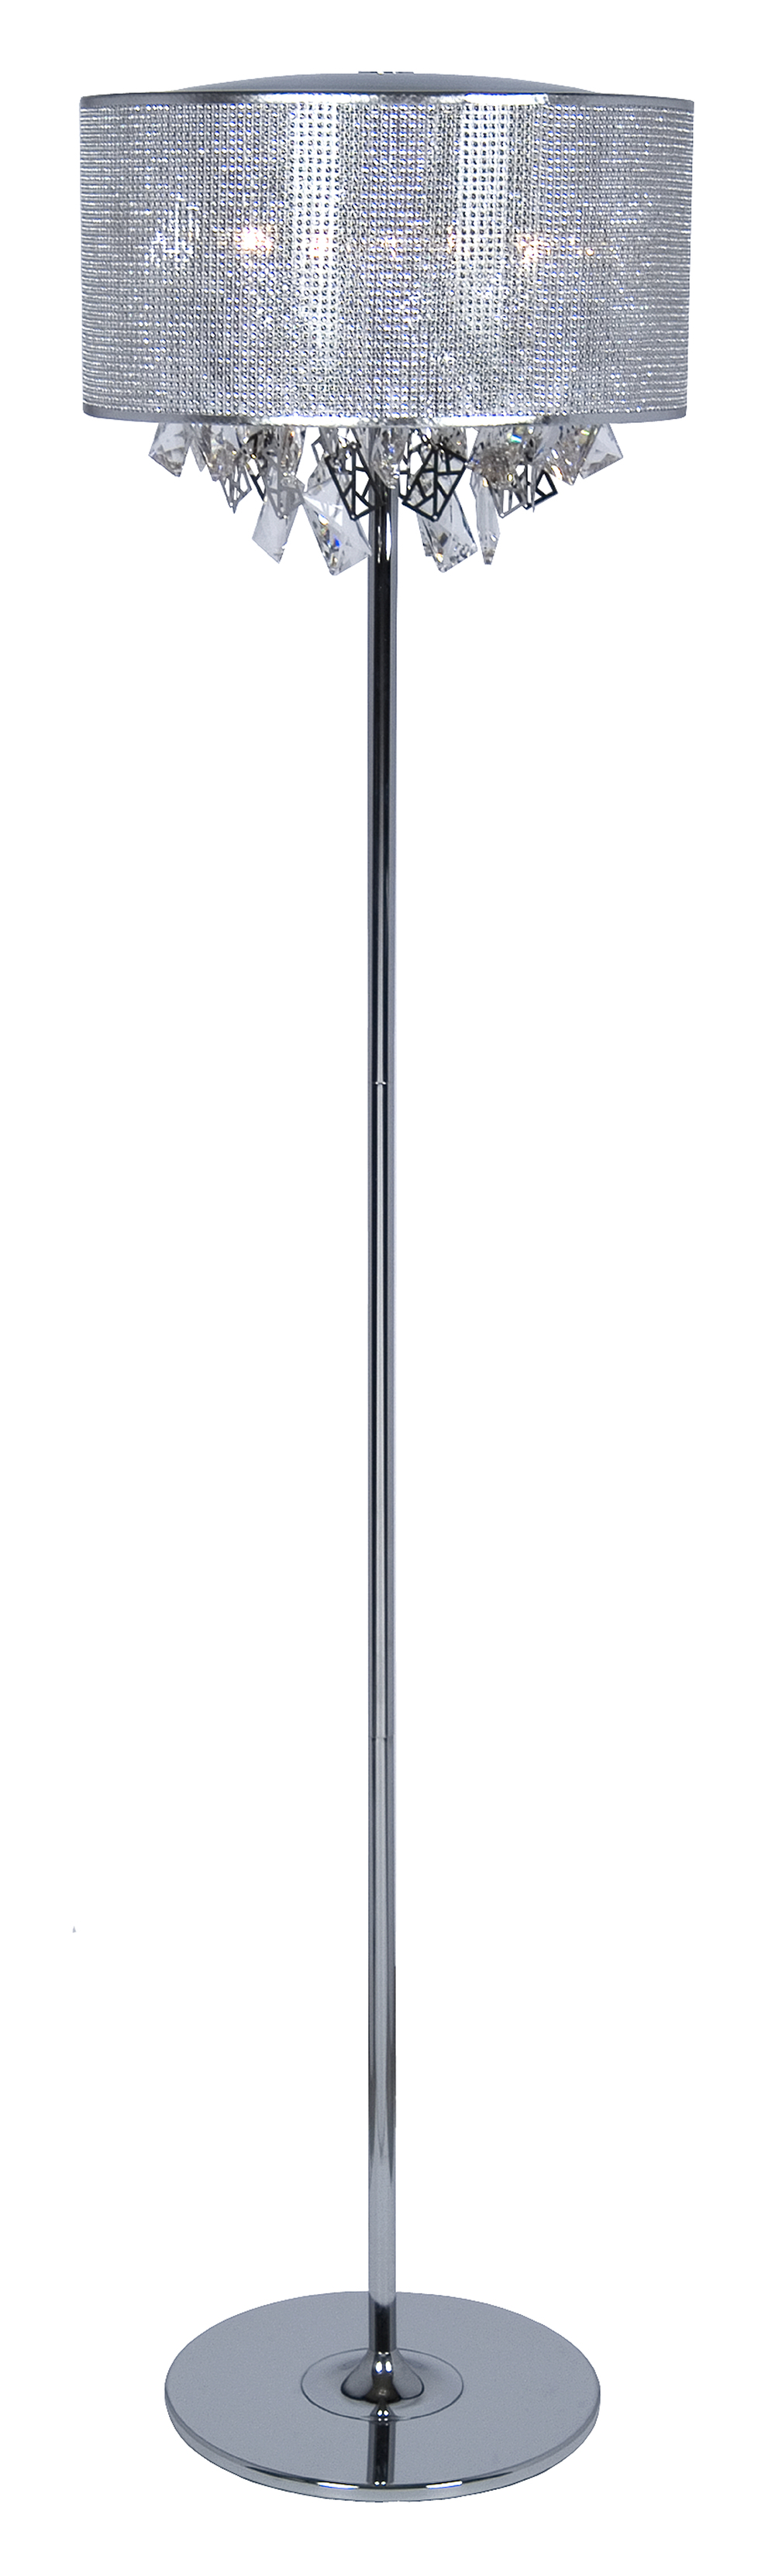 20002 | DIAMOND FLOOR LAMP